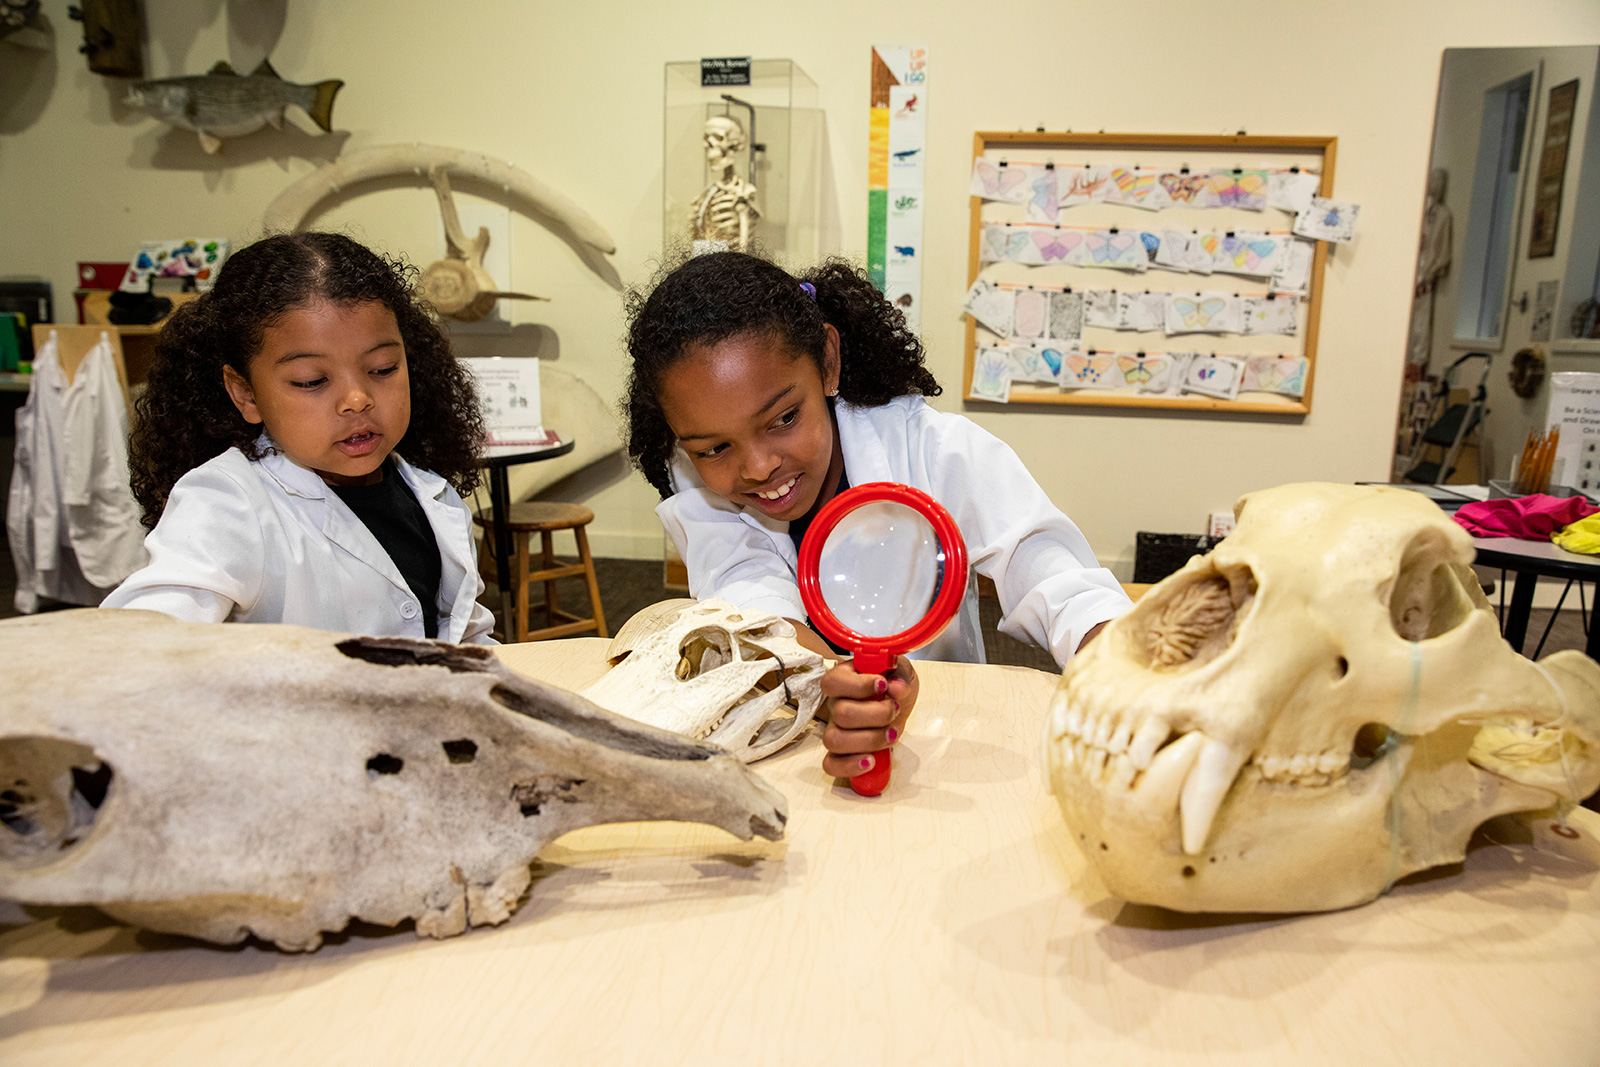 Two young girls in white lab coats use a hand lens to examine models of fossils at a table in Q?rius jr. – a discovery room.